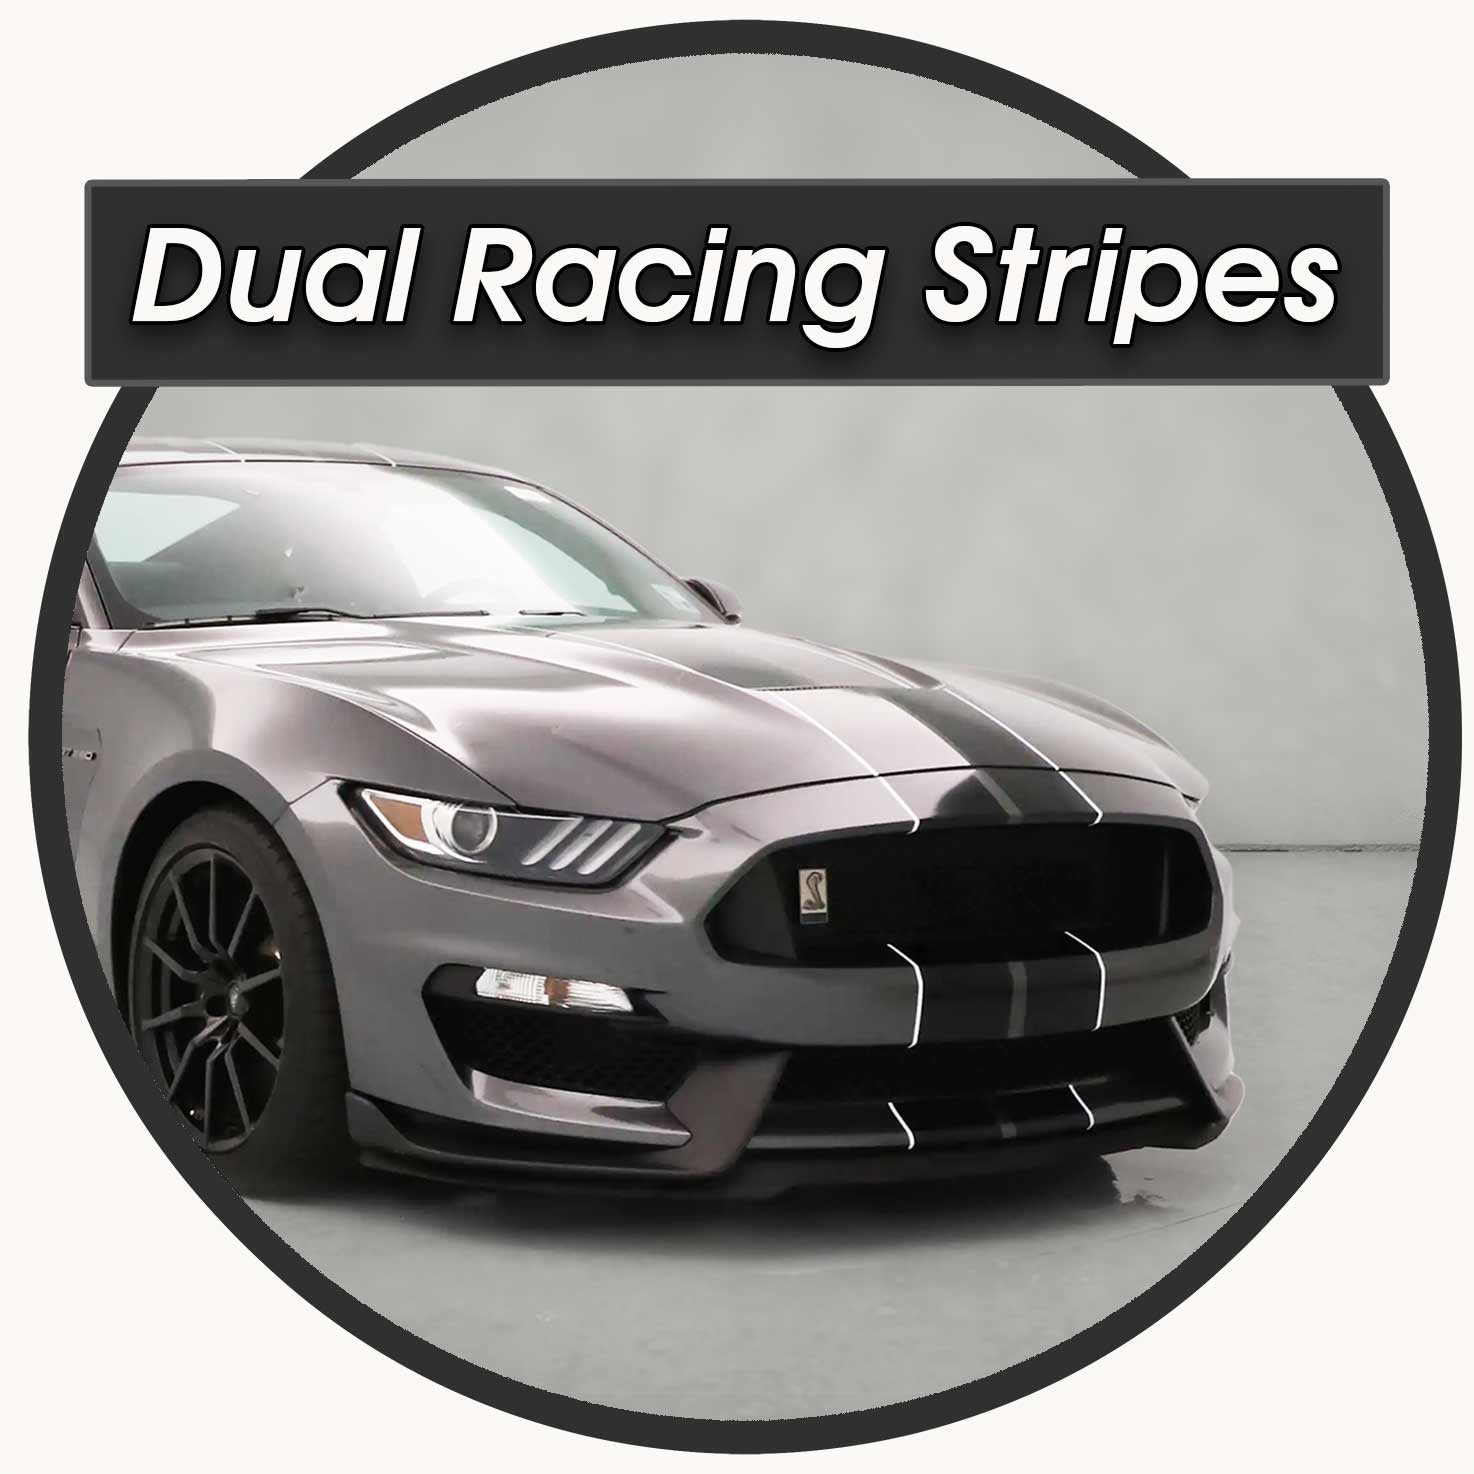 Shelby GT350 Mustang with Dual Racing Stripes pre-cut